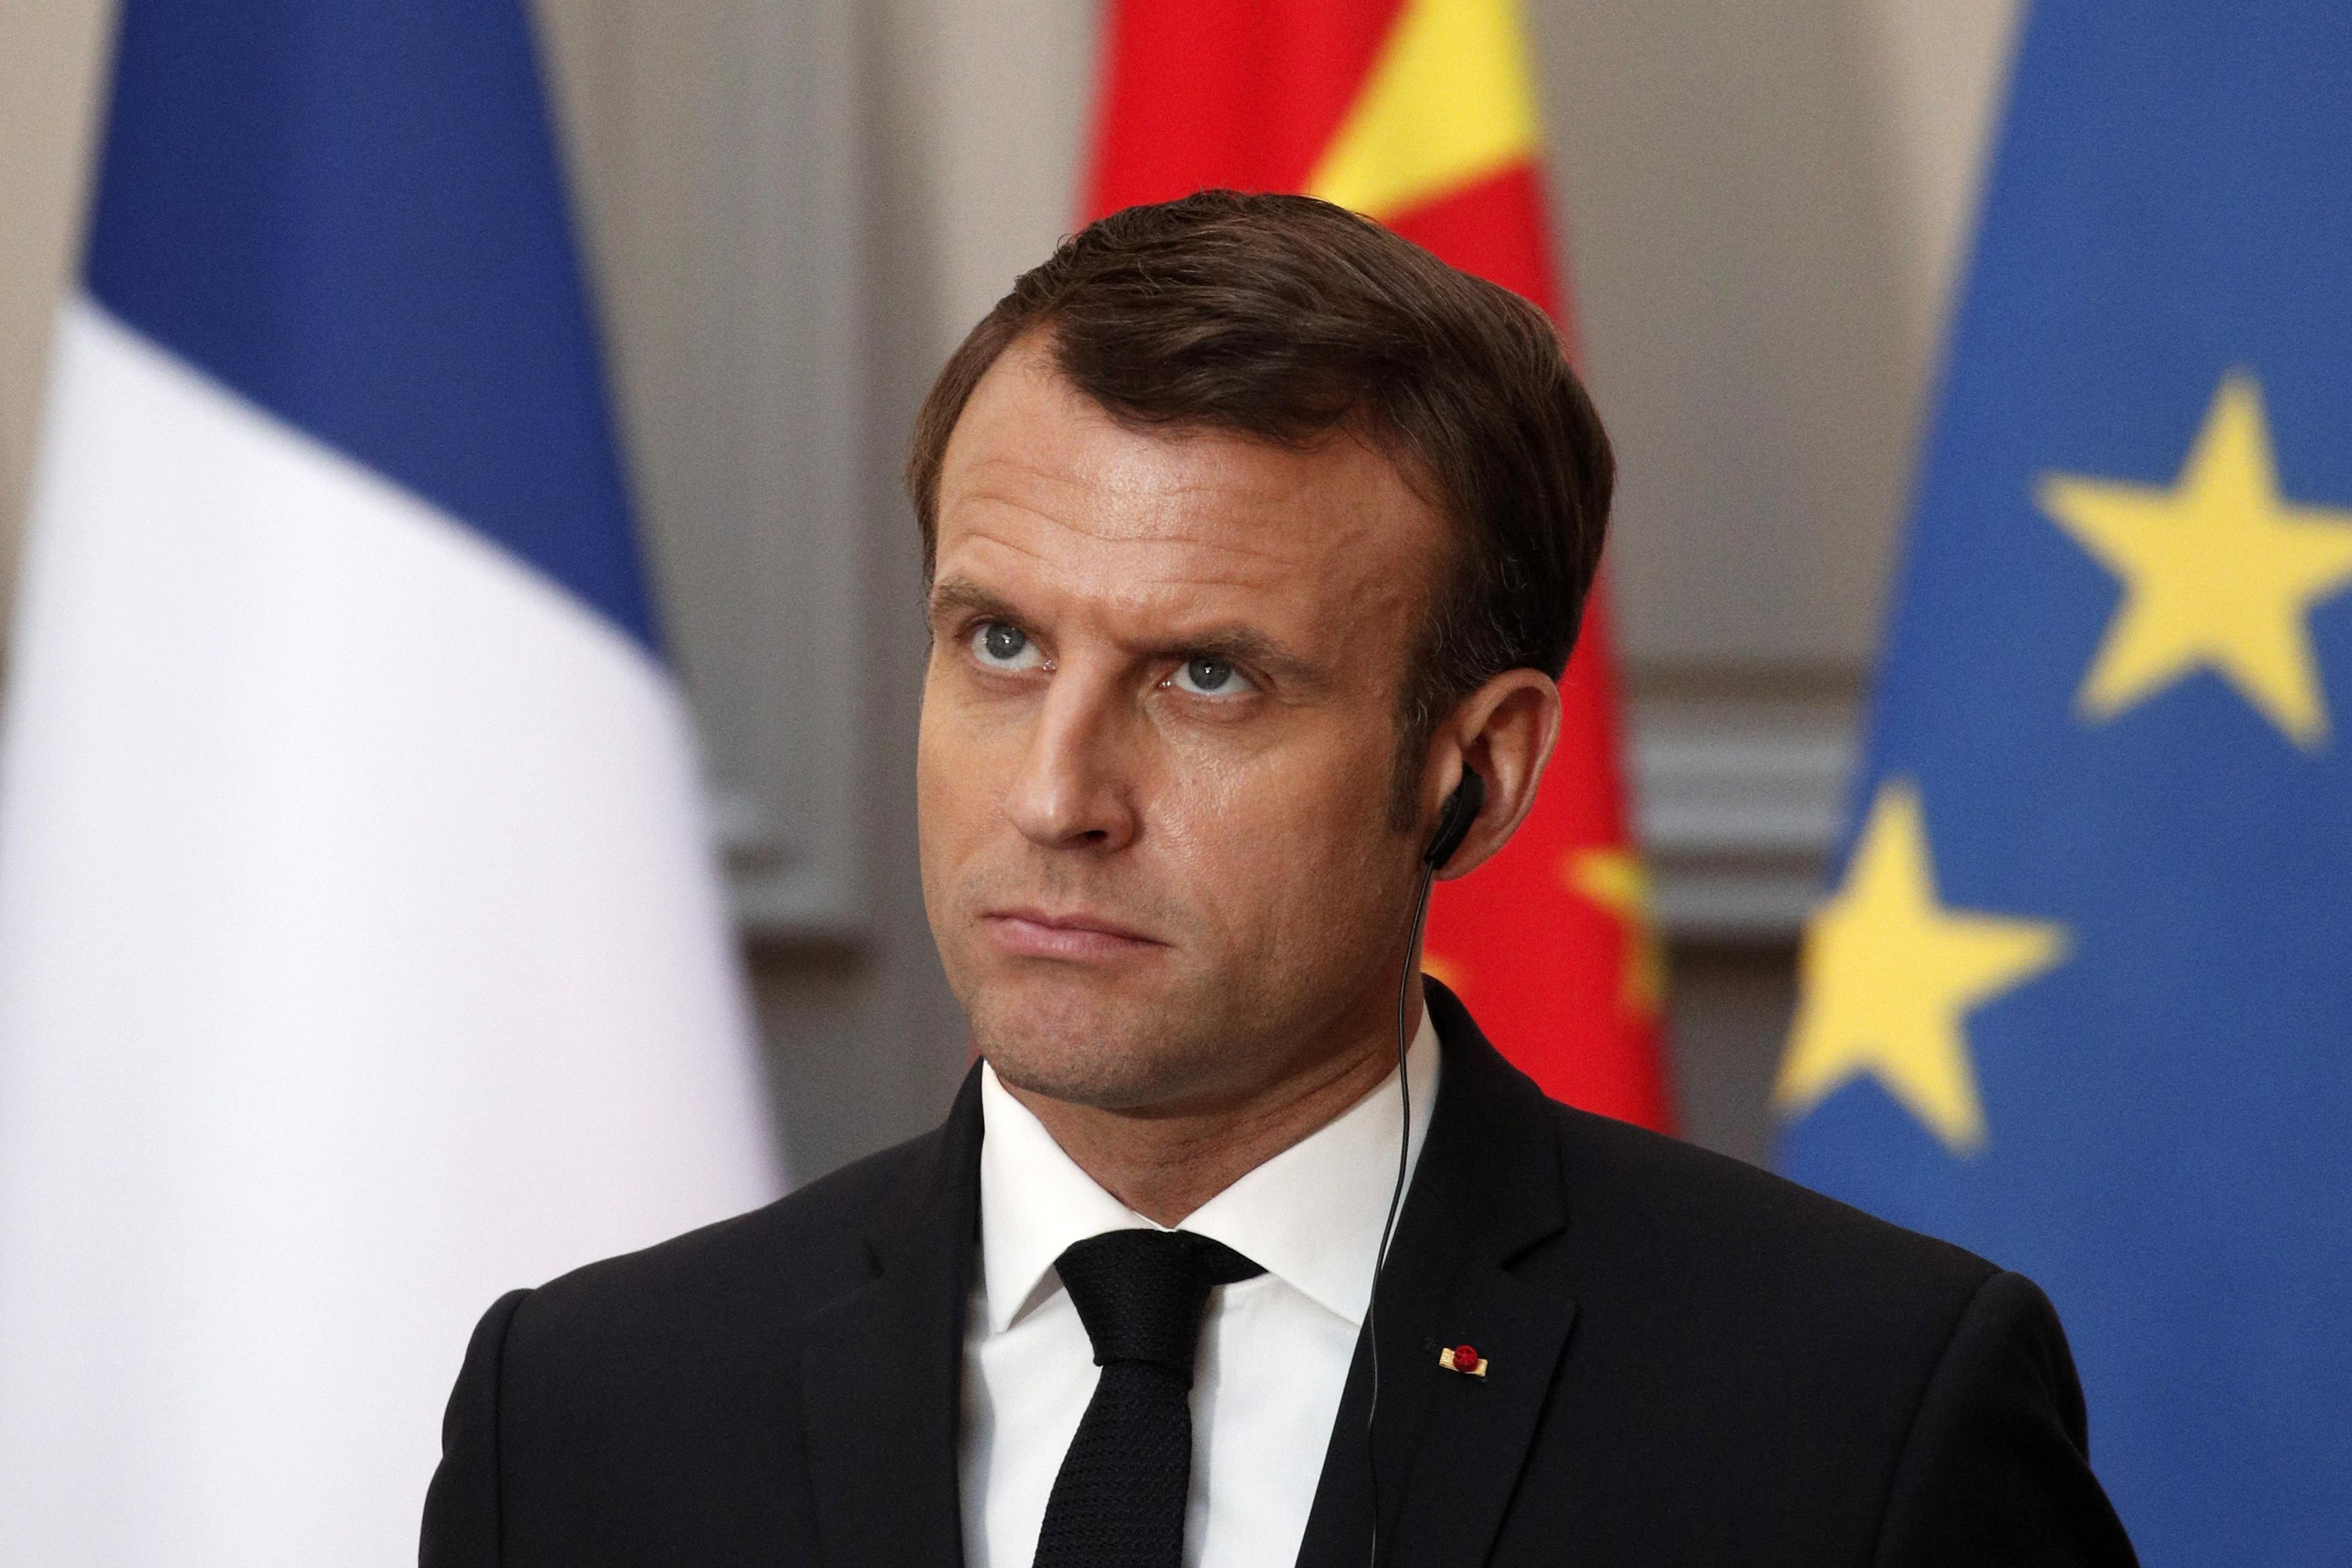 France's Macron: time to bustle final preparations for no Brexit deal